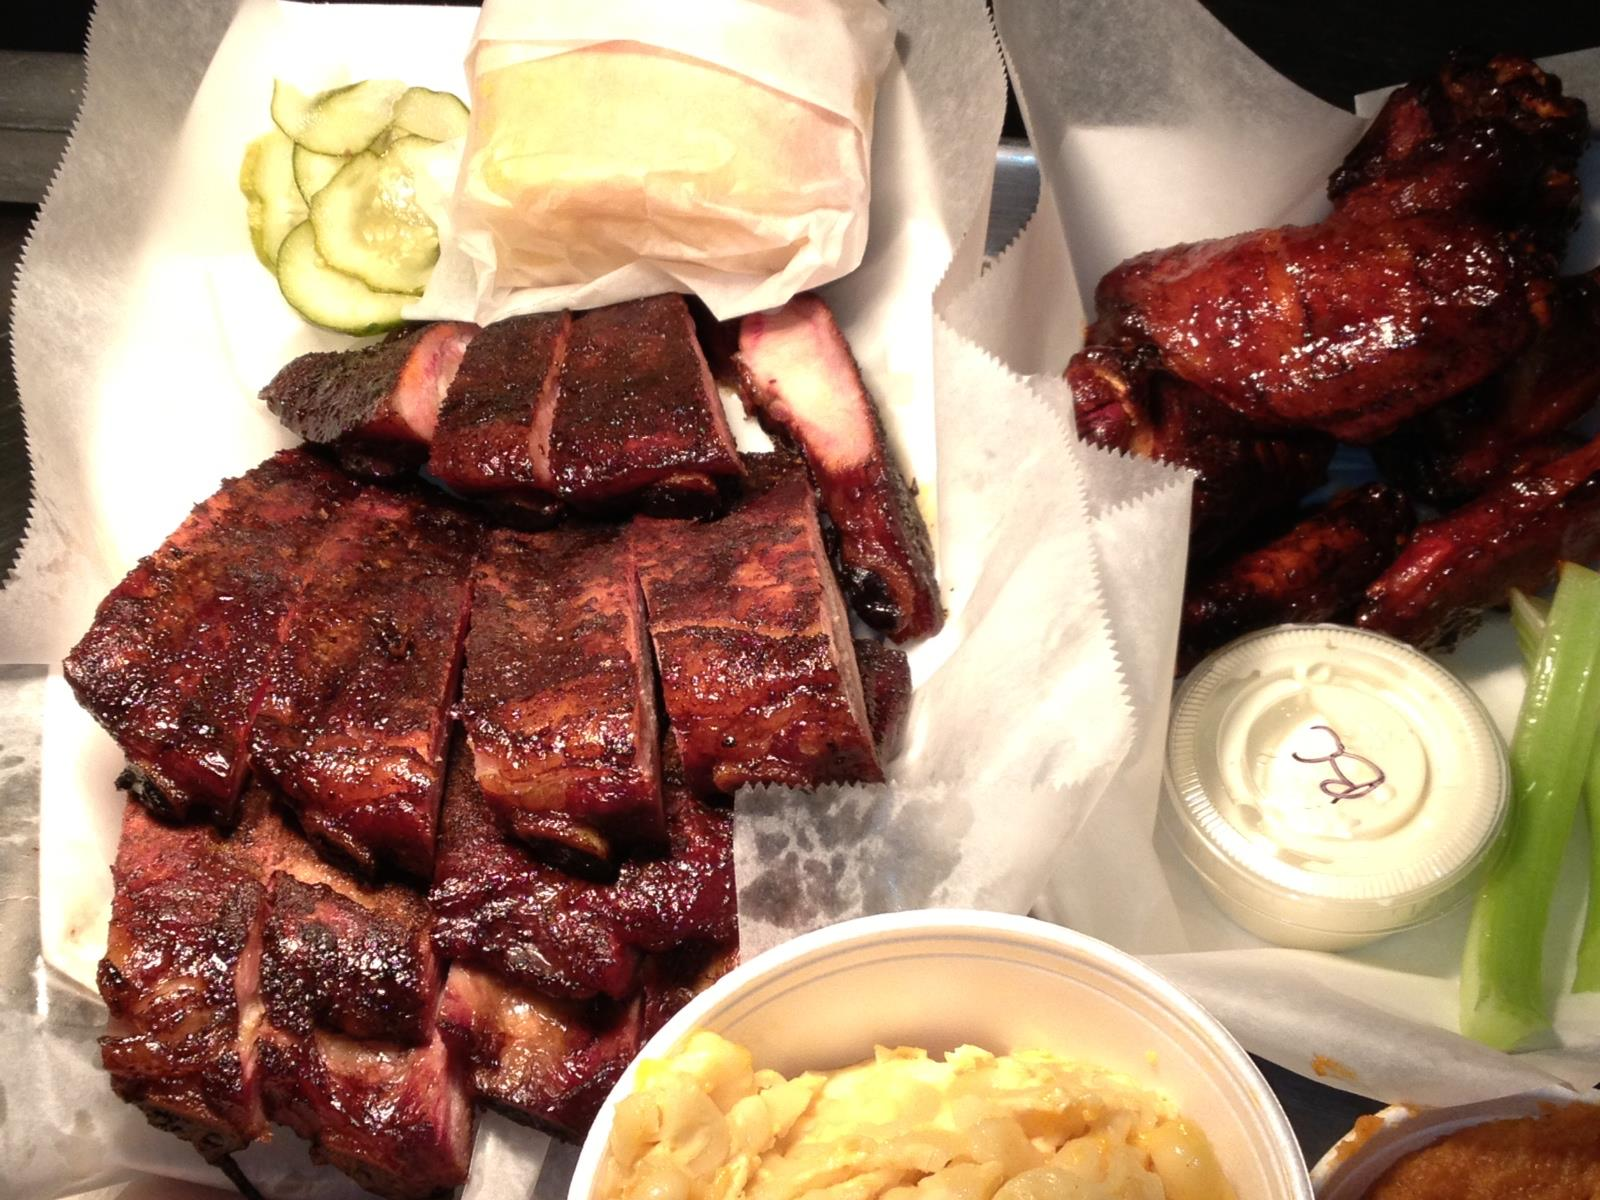 Ribs, wings, and sides at Wilson't Real Pit Barbeque of Fairfiled, CT